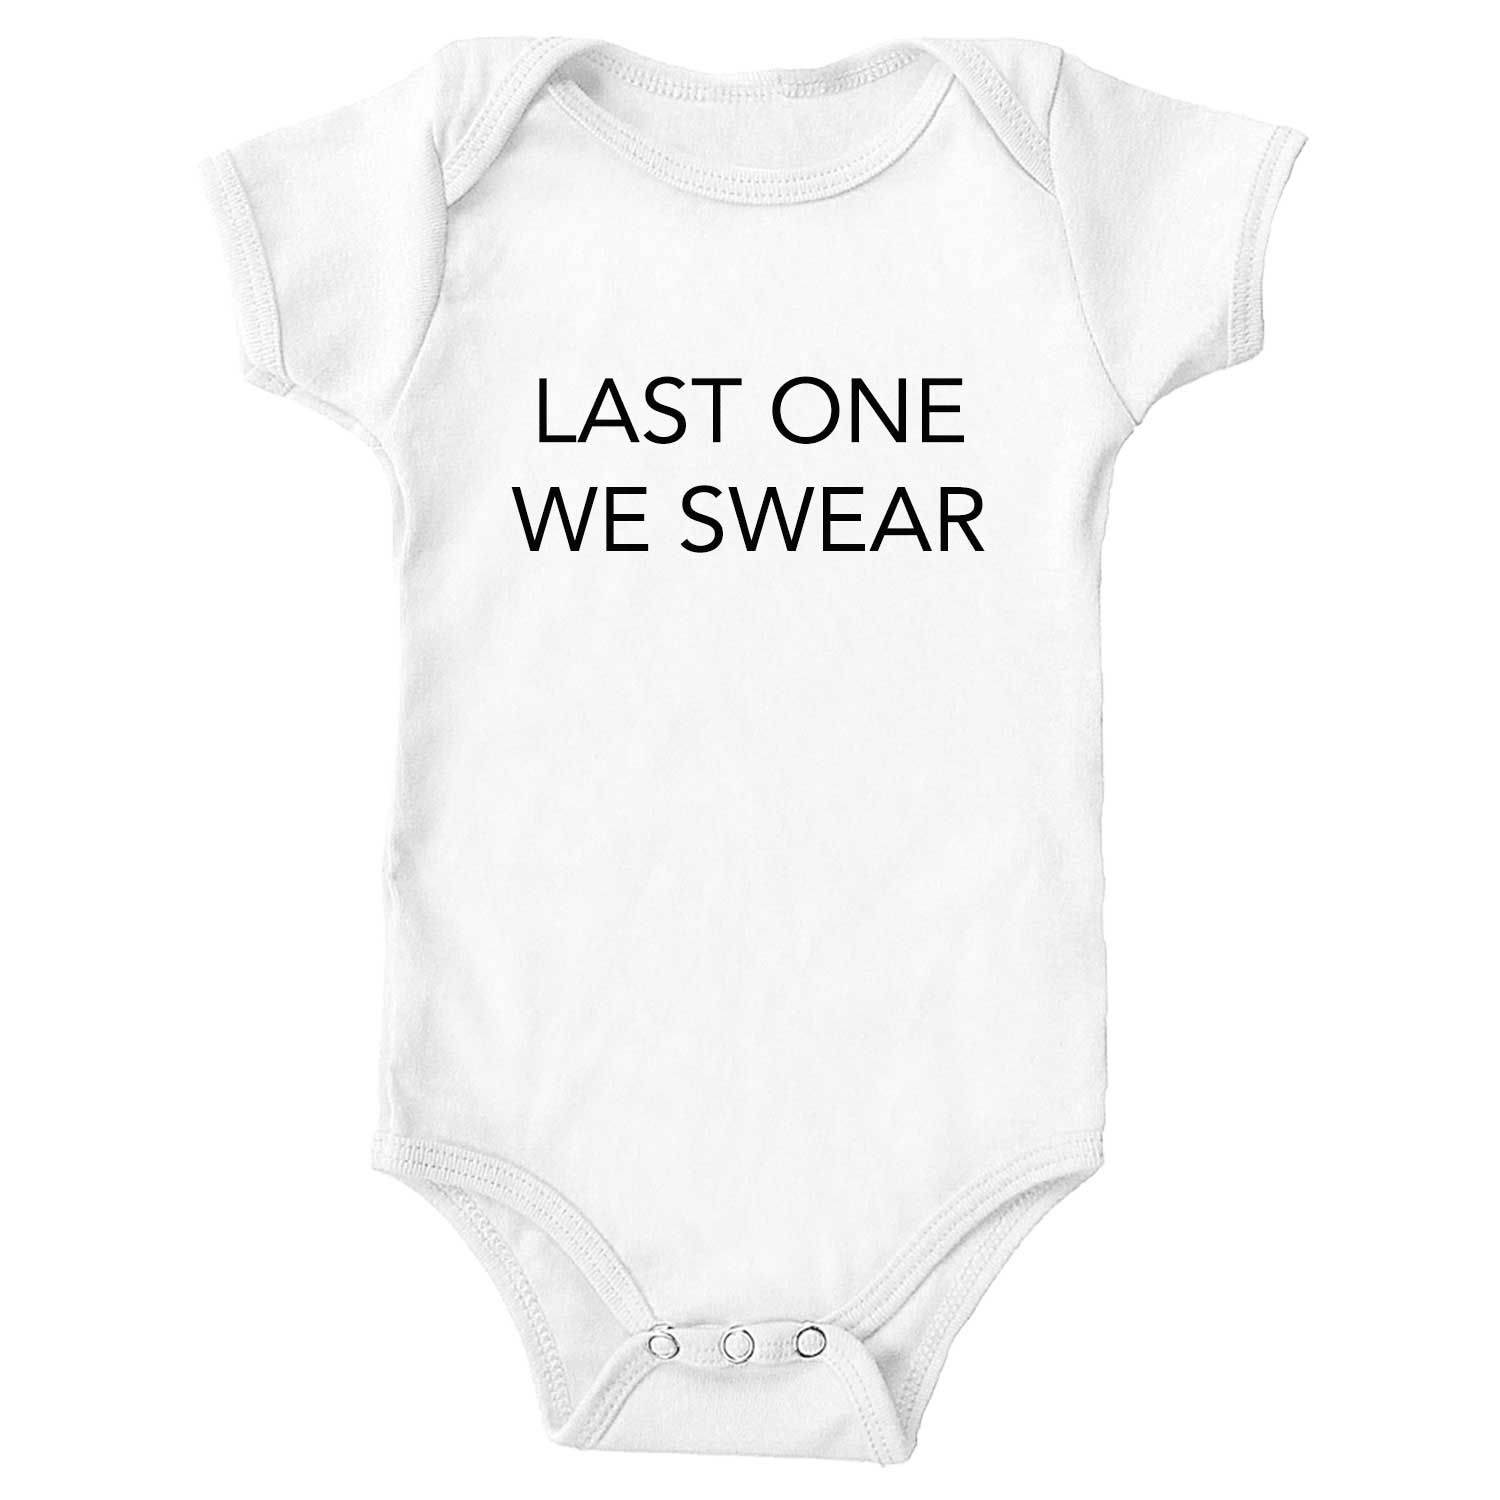 Rainbowhug Smile Skull Unisex Baby Onesie Lovely Newborn Clothes Concise Baby Outfits Soft Baby Clothes